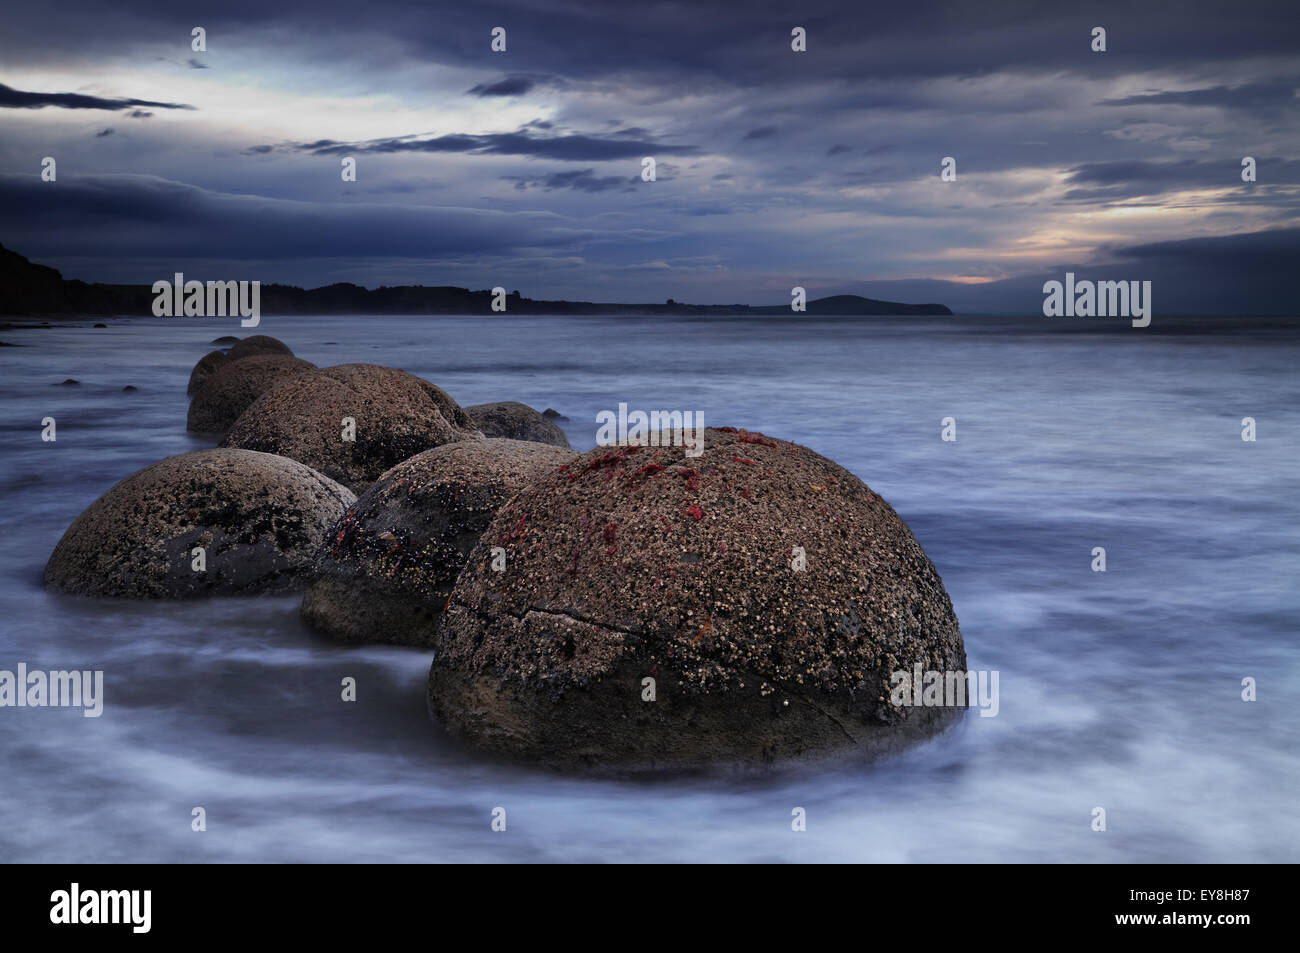 Moeraki Boulders at sunrise, South Island, New Zealand - Stock Image